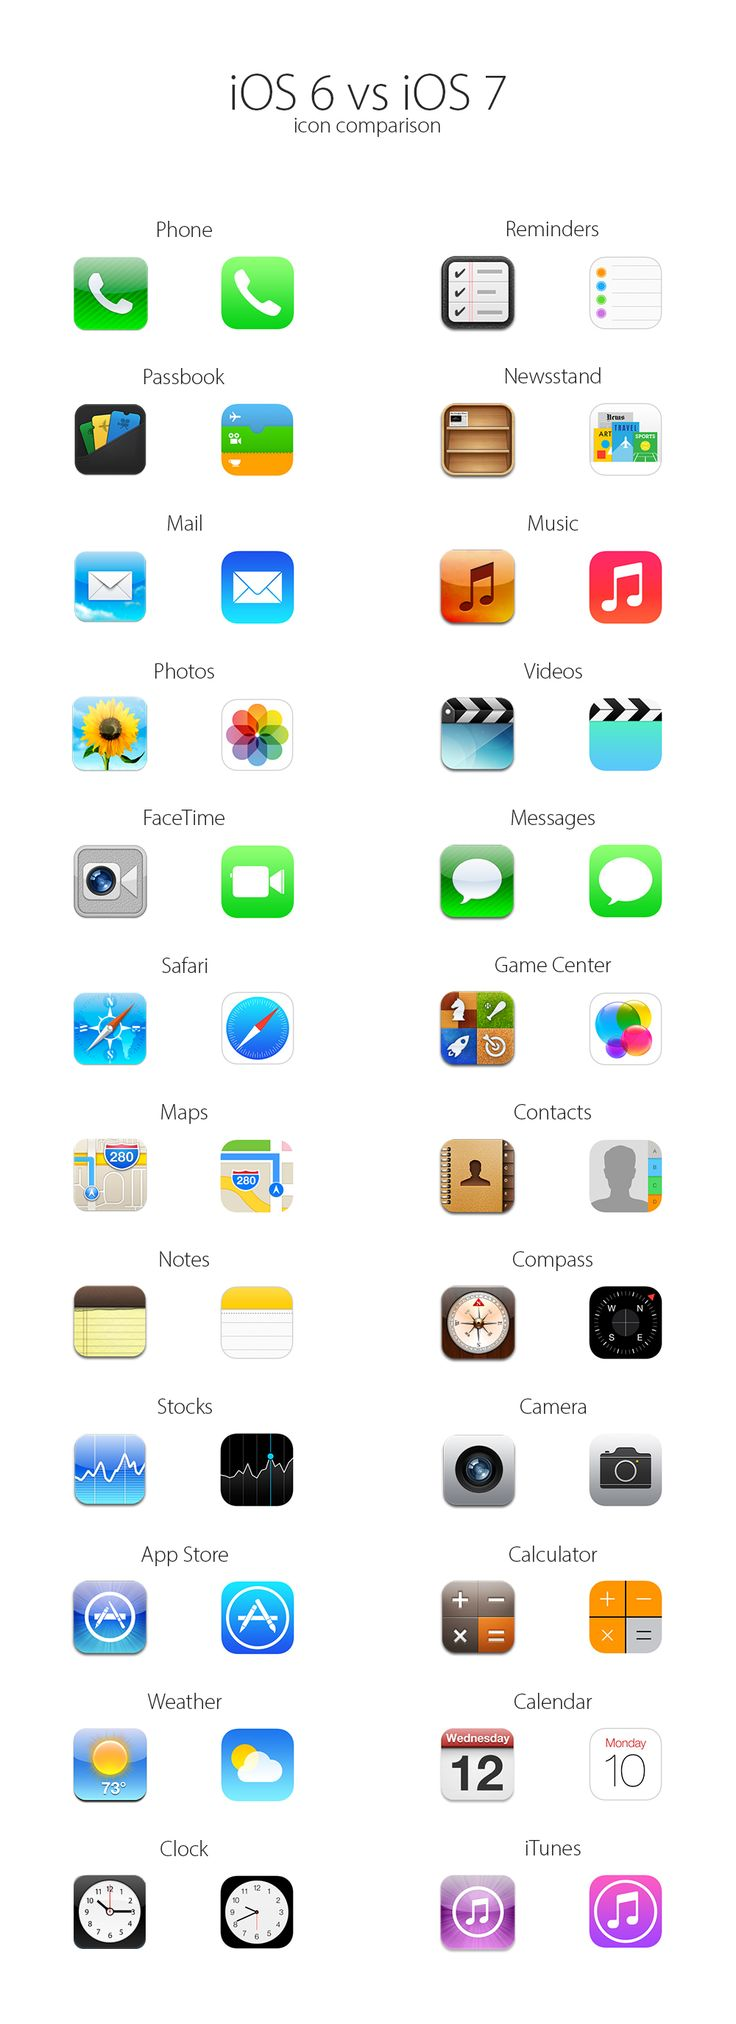 How the design of iOS 6 compares to iOS 7